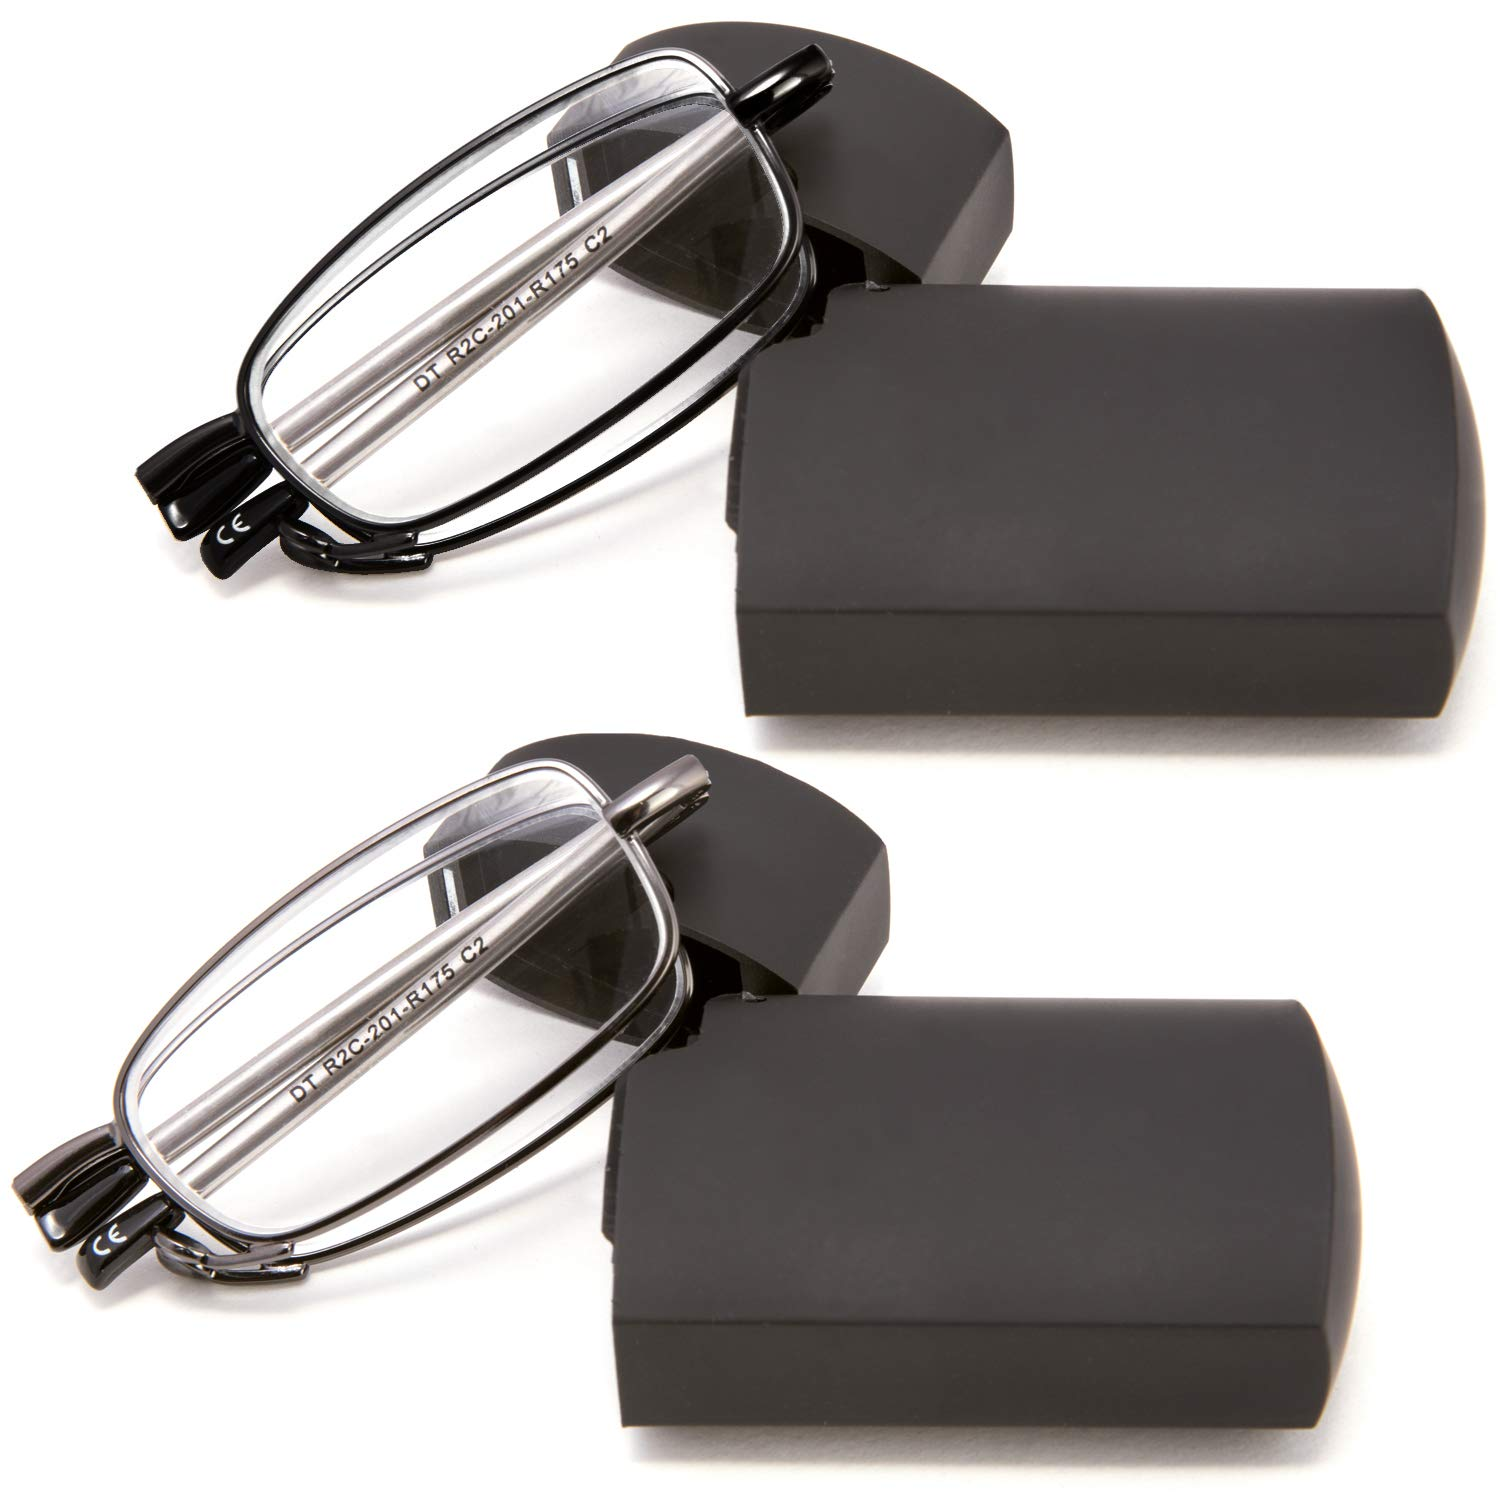 DOUBLETAKE Reading Glasses - 2 Pairs Folding Readers Includes Glasses Case 1.50 by DOUBLETAKE